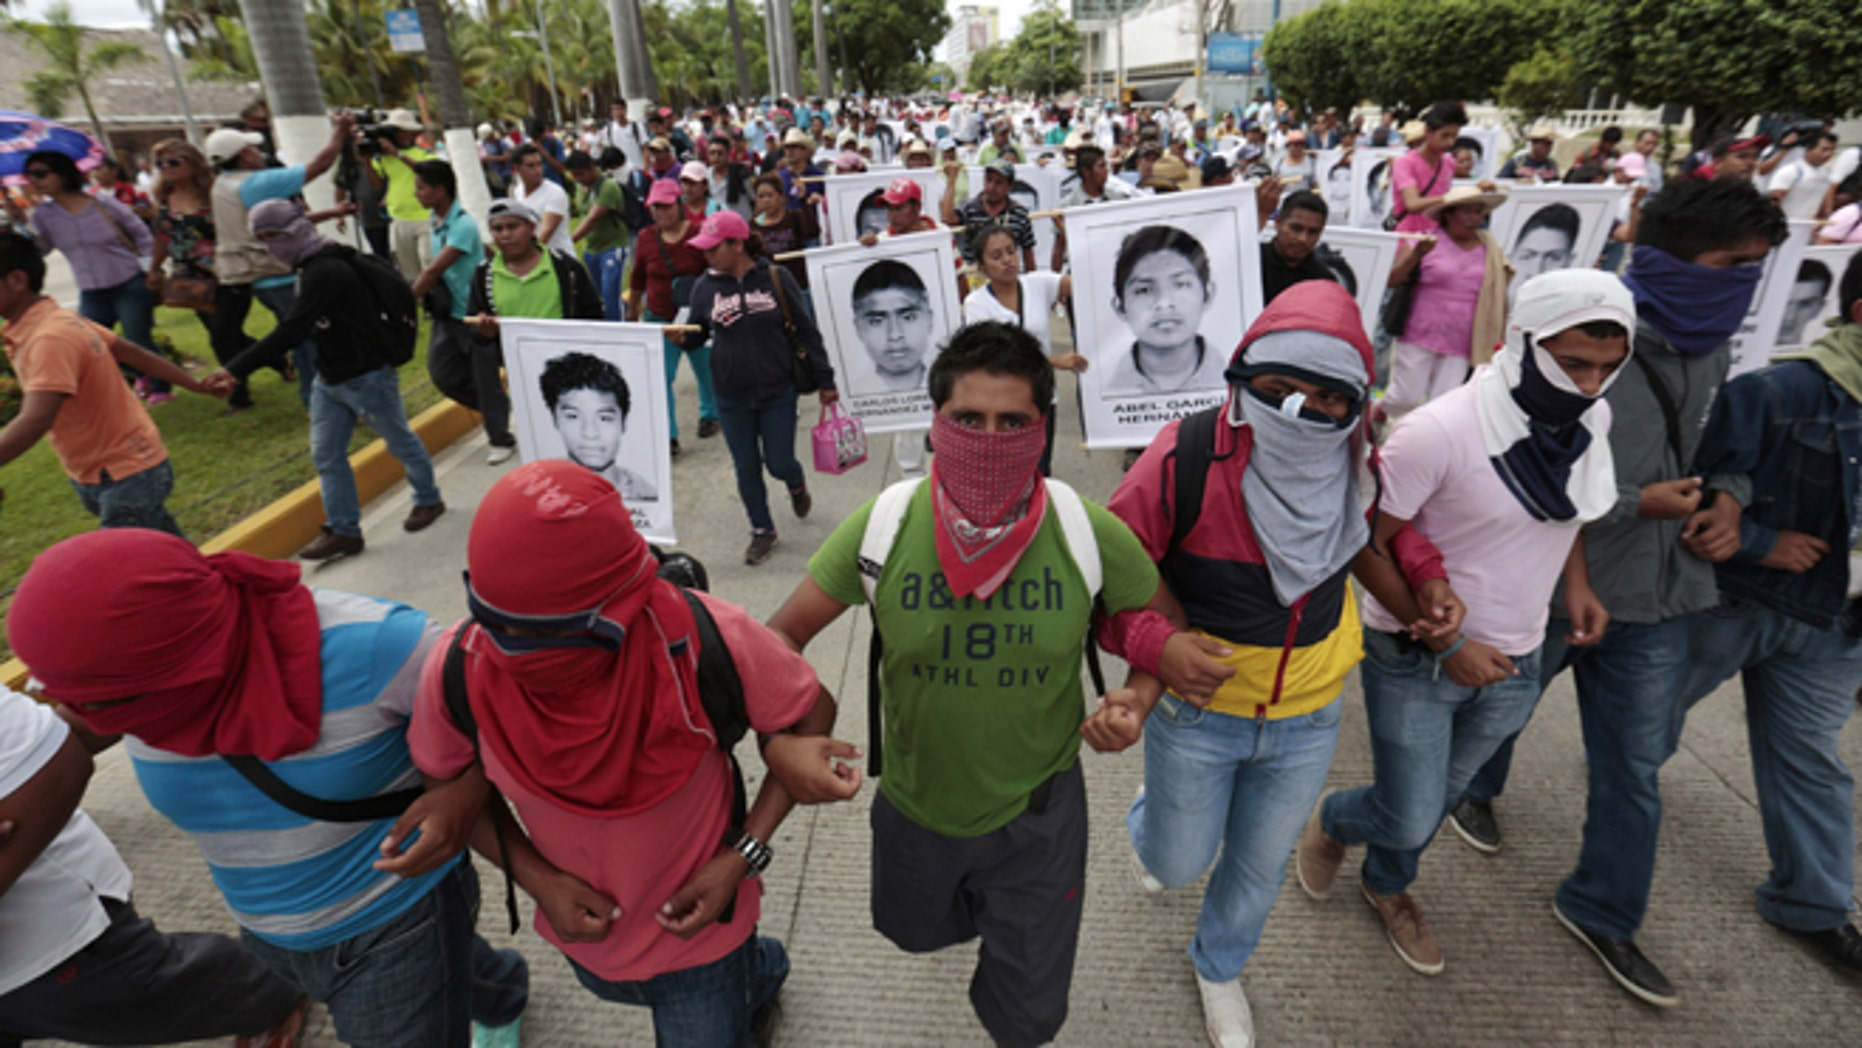 Masked demonstrators march with photographs of missing students and chant slogans to protest the disappearance of 43 students from the Isidro Burgos rural teachers college in Acapulco, Guerrero state, Mexico, Friday, Oct. 17, 2014. Investigators determined that 28 sets of human remains recovered from a mass grave discovered outside Iguala, in Guerrero state, last weekend were not those of any of the youths who haven't been seen since being confronted by police in that city Sept. 26. (AP Photo/Eduardo Verdugo)